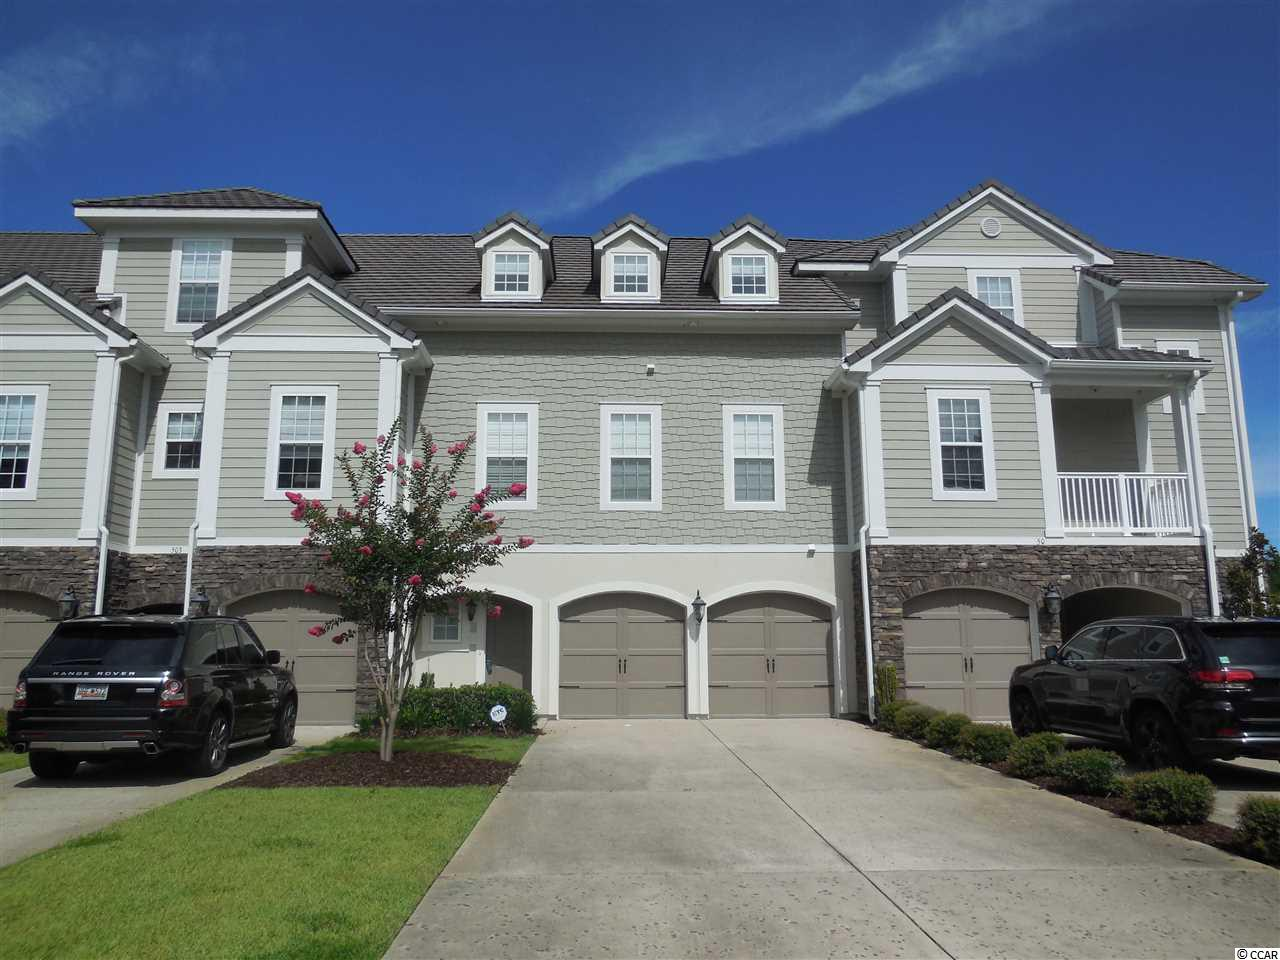 Townhouse MLS:1814448 The Dye Townhomes - Barefoot Res  2557 Pete Dye Dr. North Myrtle Beach SC